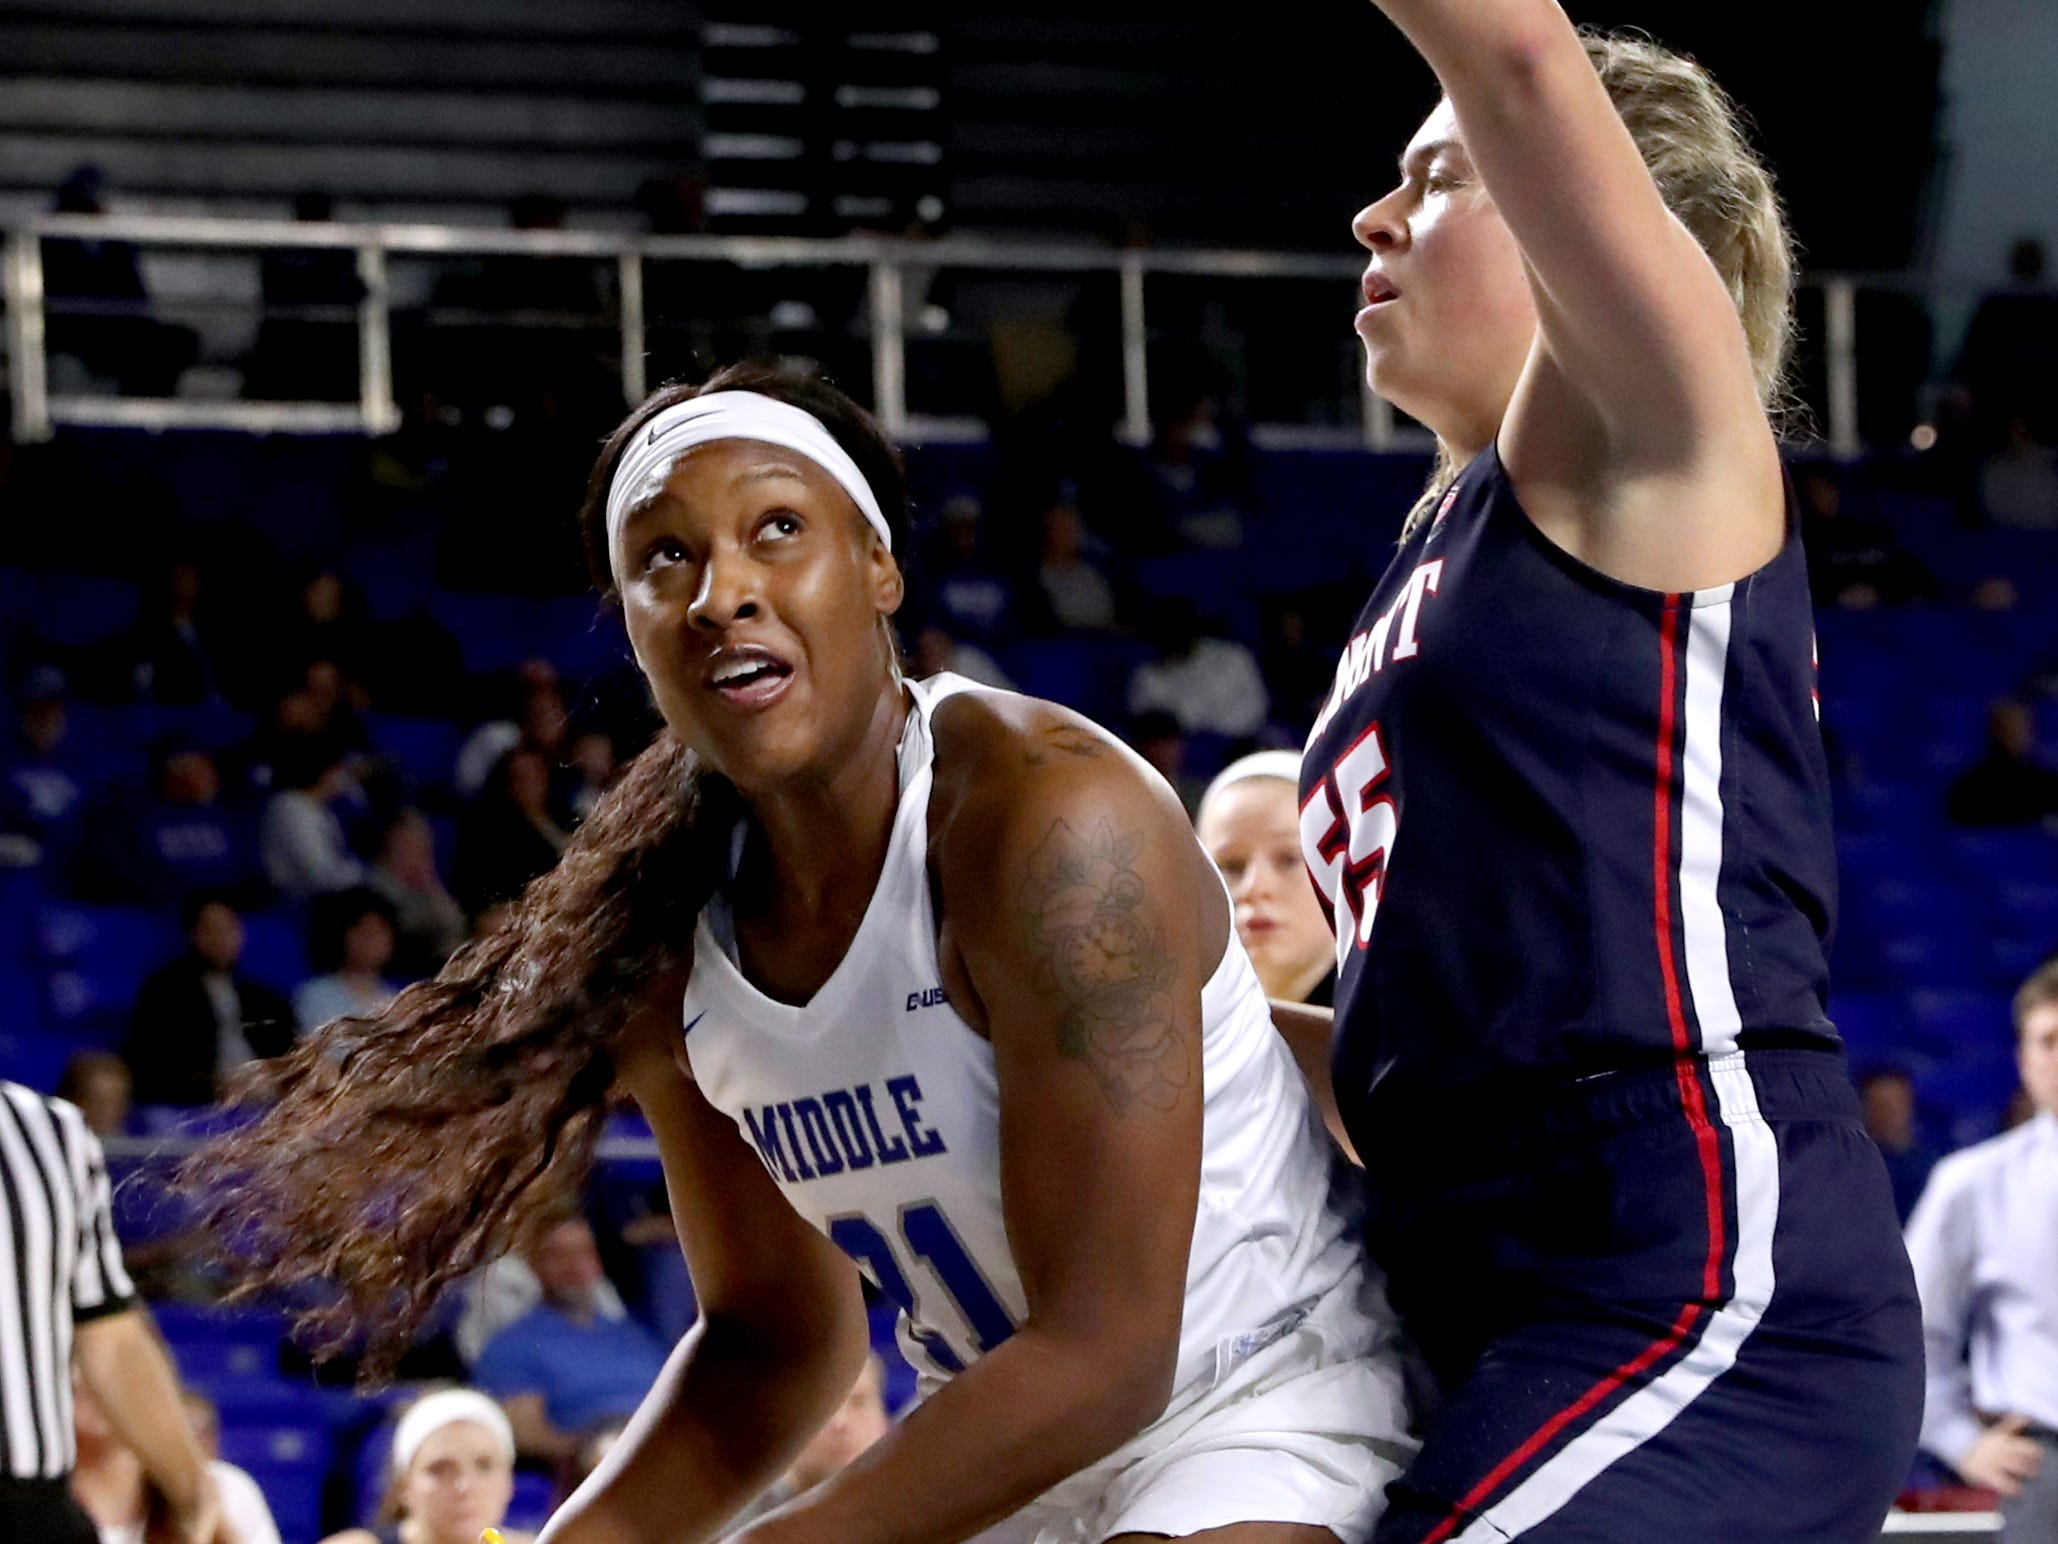 MTSU's LaSonja Edwards (21) goes up for a basket as Belmont's Maddie Wright (55) guards her during the game at MTSU on Monday, Nov. 19, 2018.